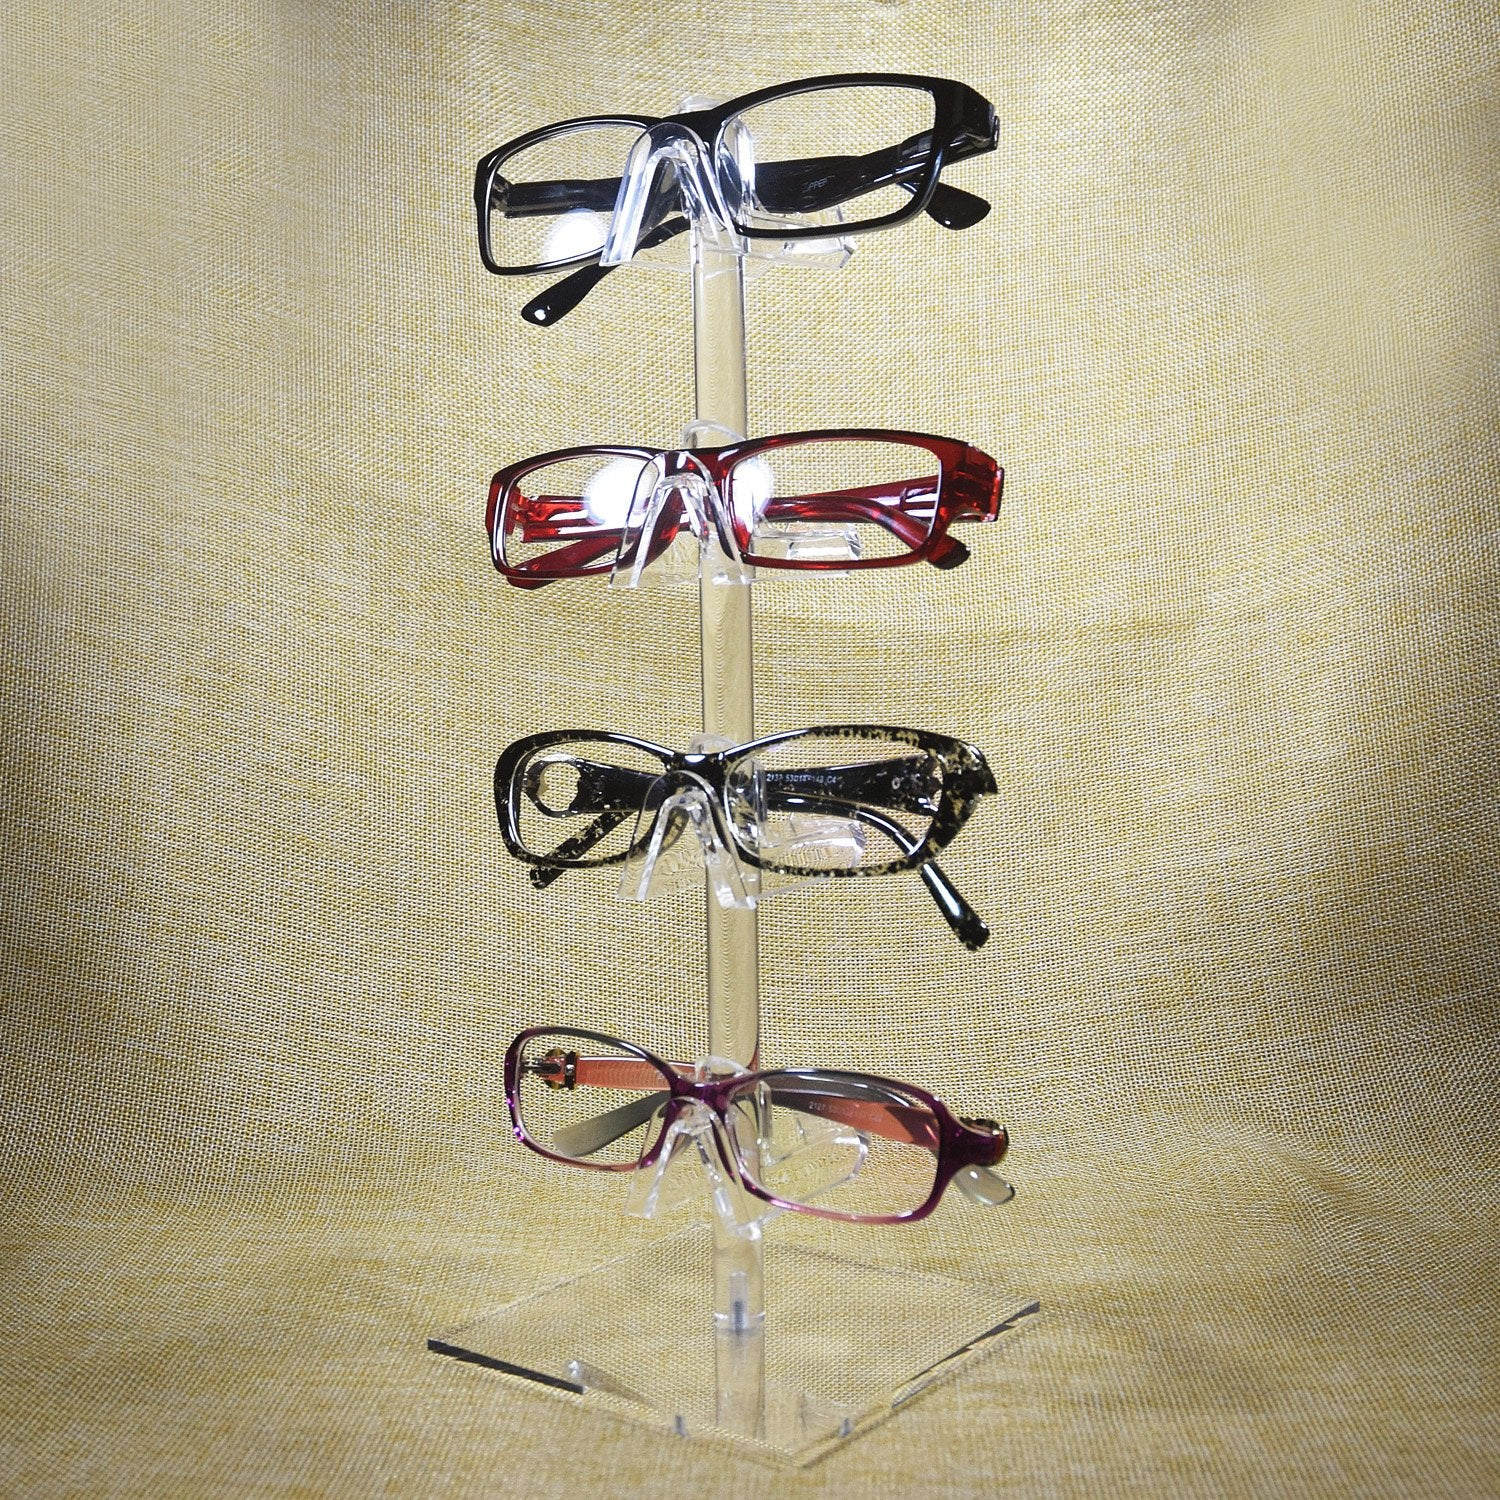 #AC-024 Acrylic Eyeglasses Frame Riser, 4 Frames | APEX International